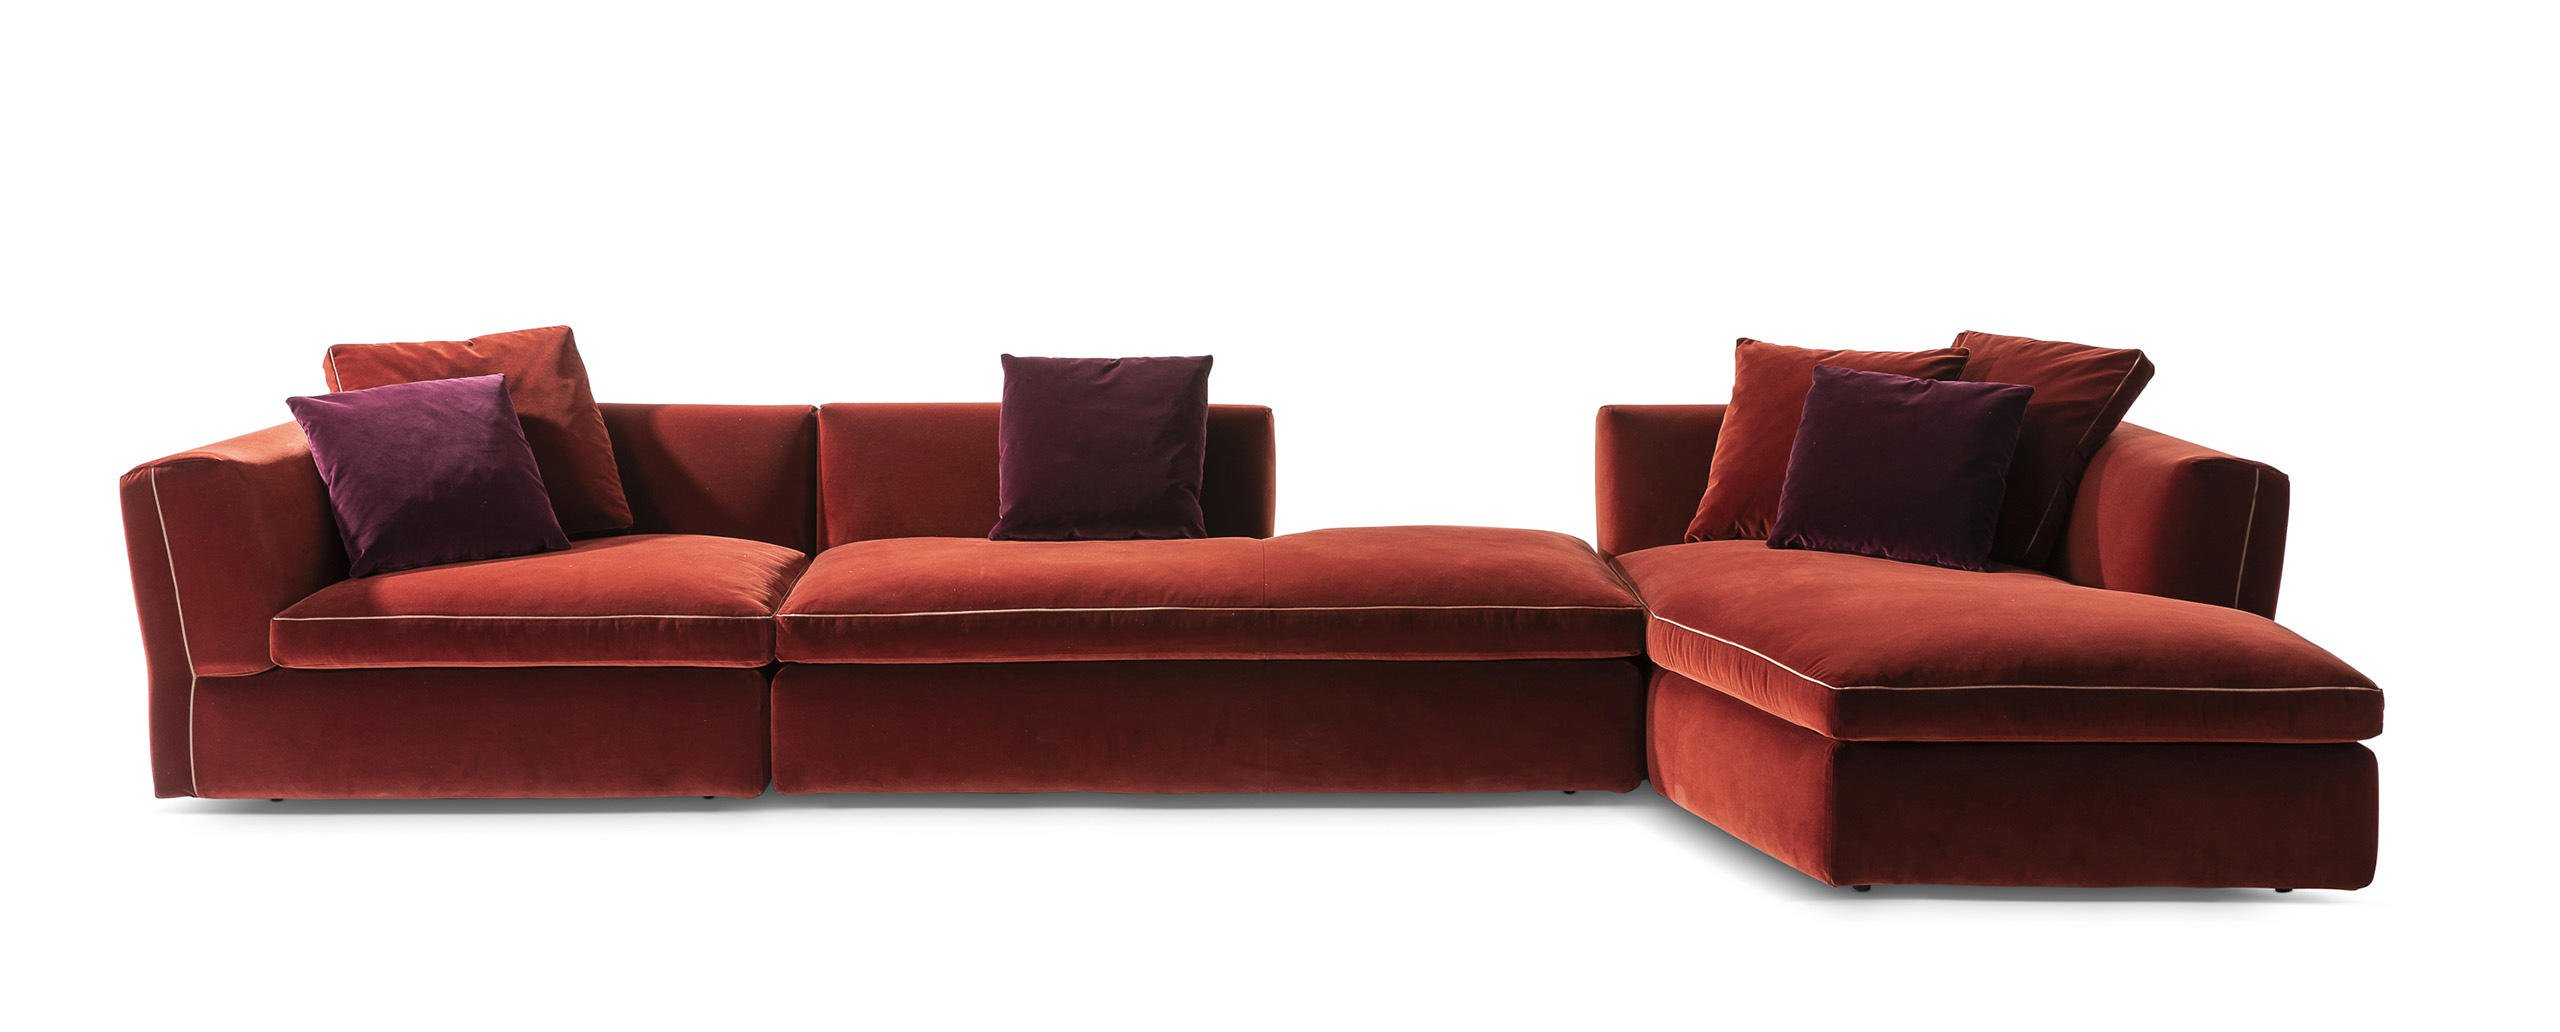 5_cassina_dress-up_sofa_system_rodolfo_dordoni